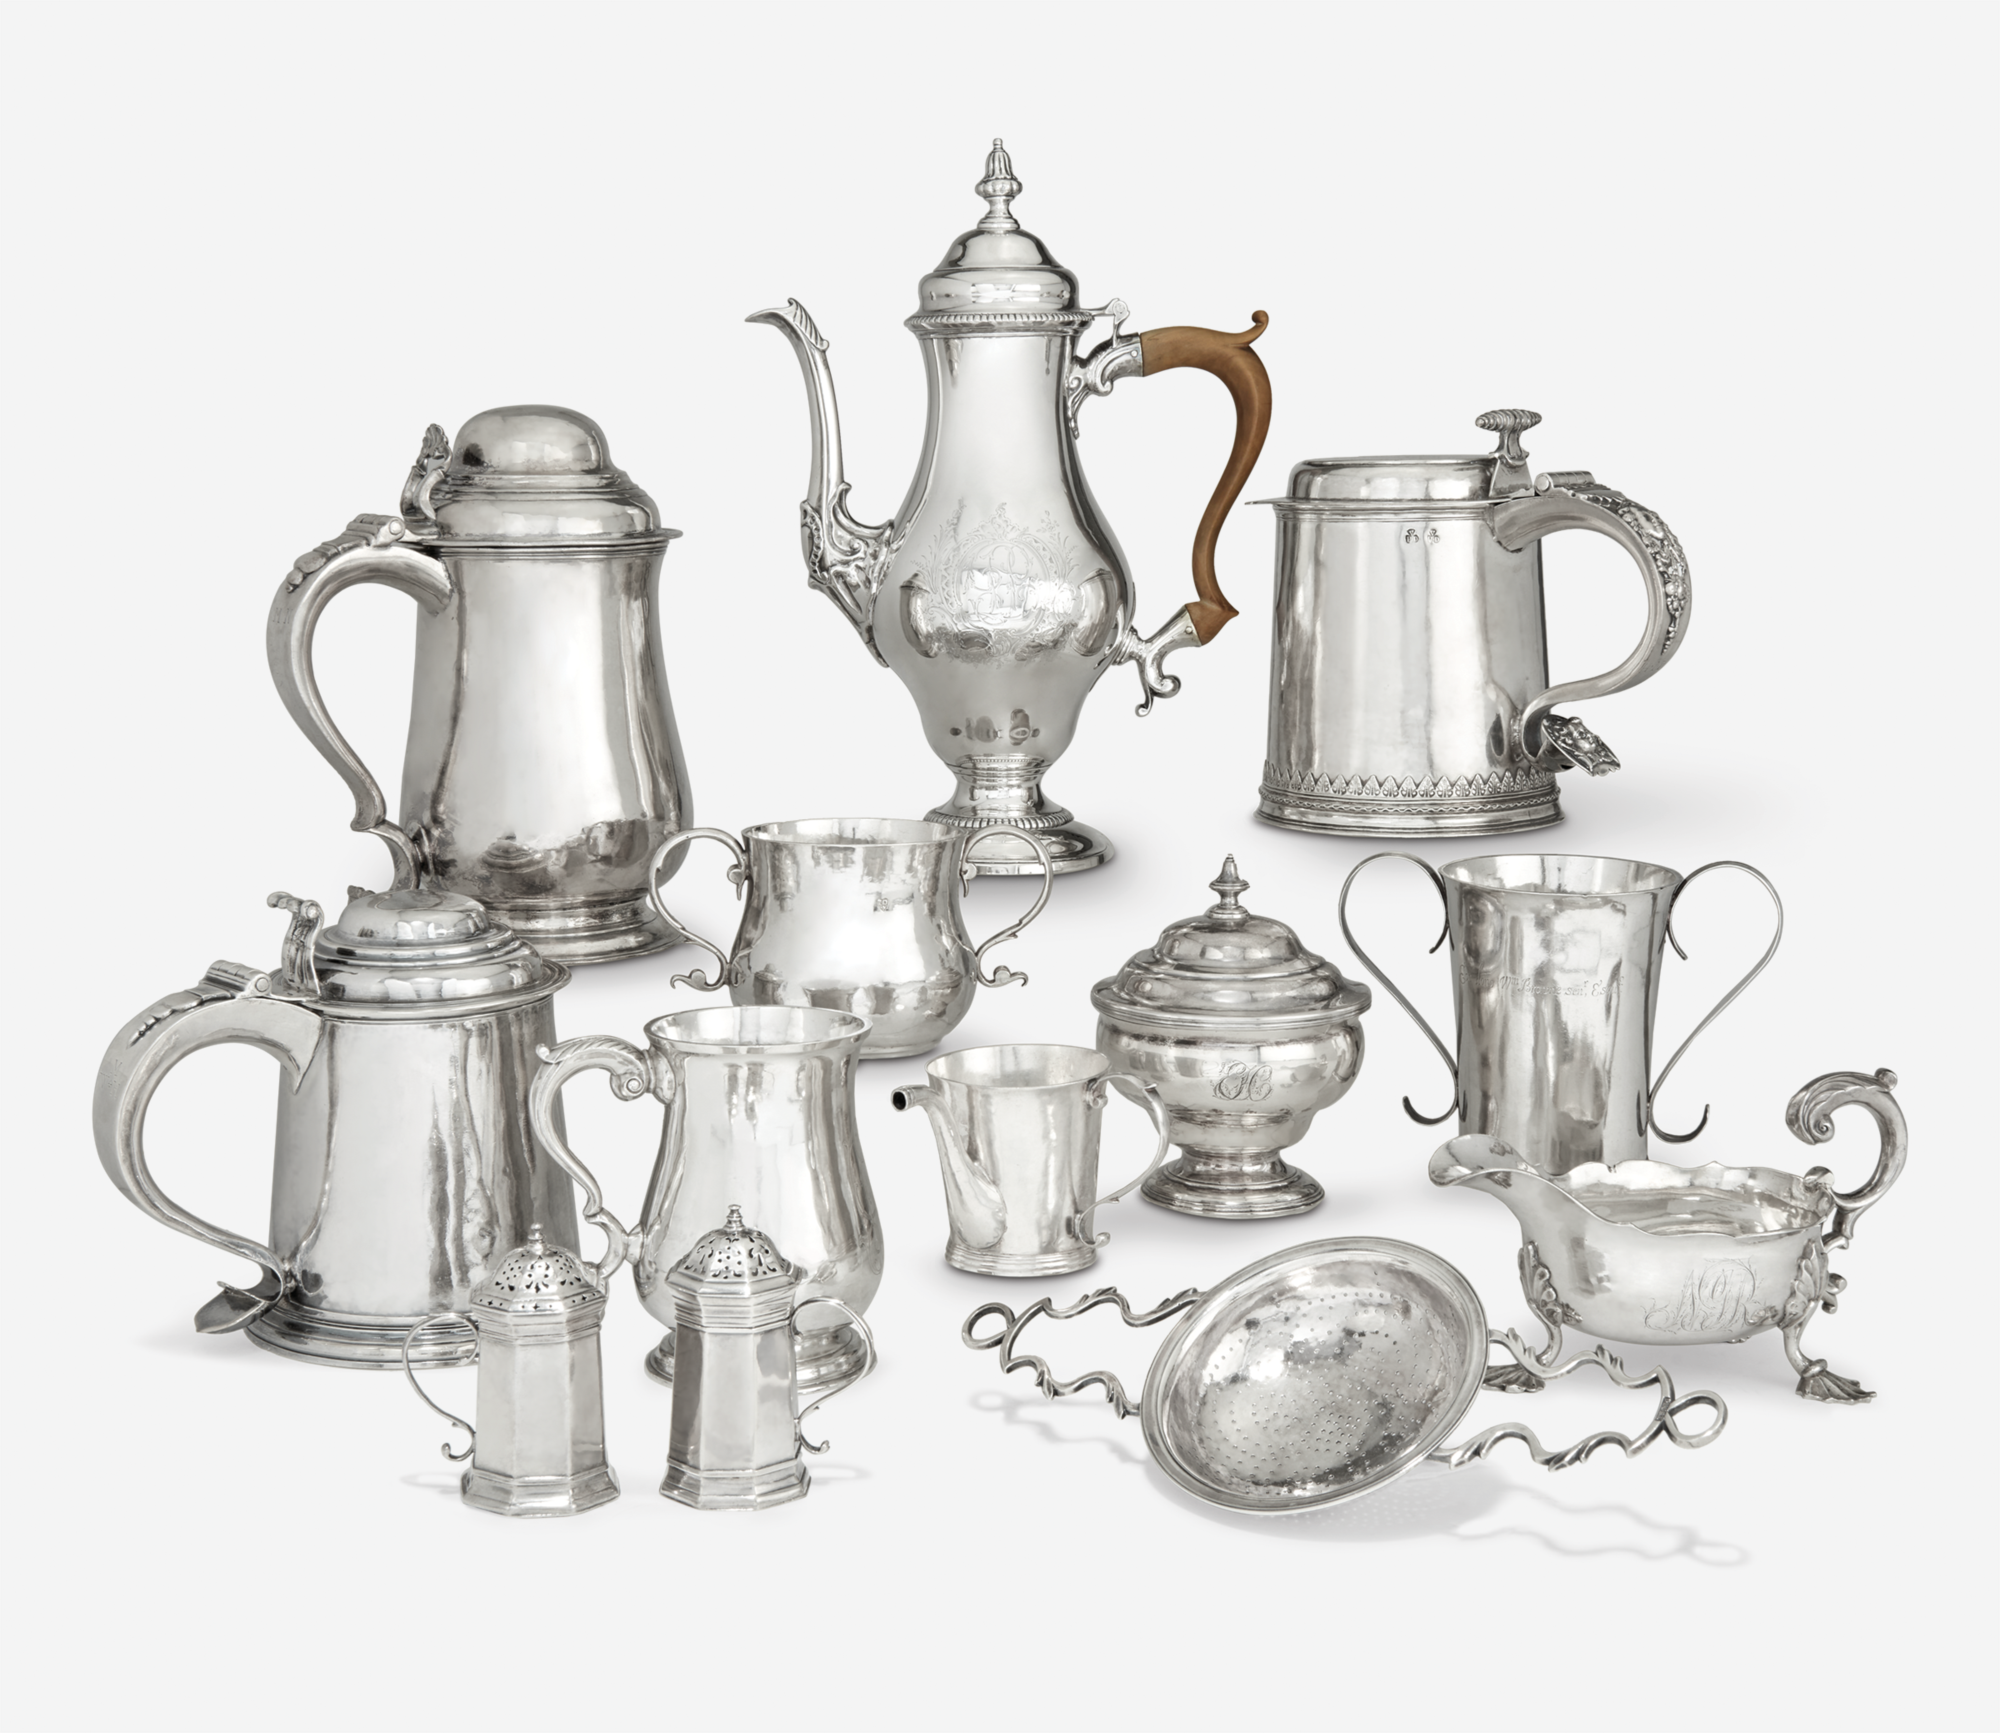 Why Silver Was So Important in Early American History